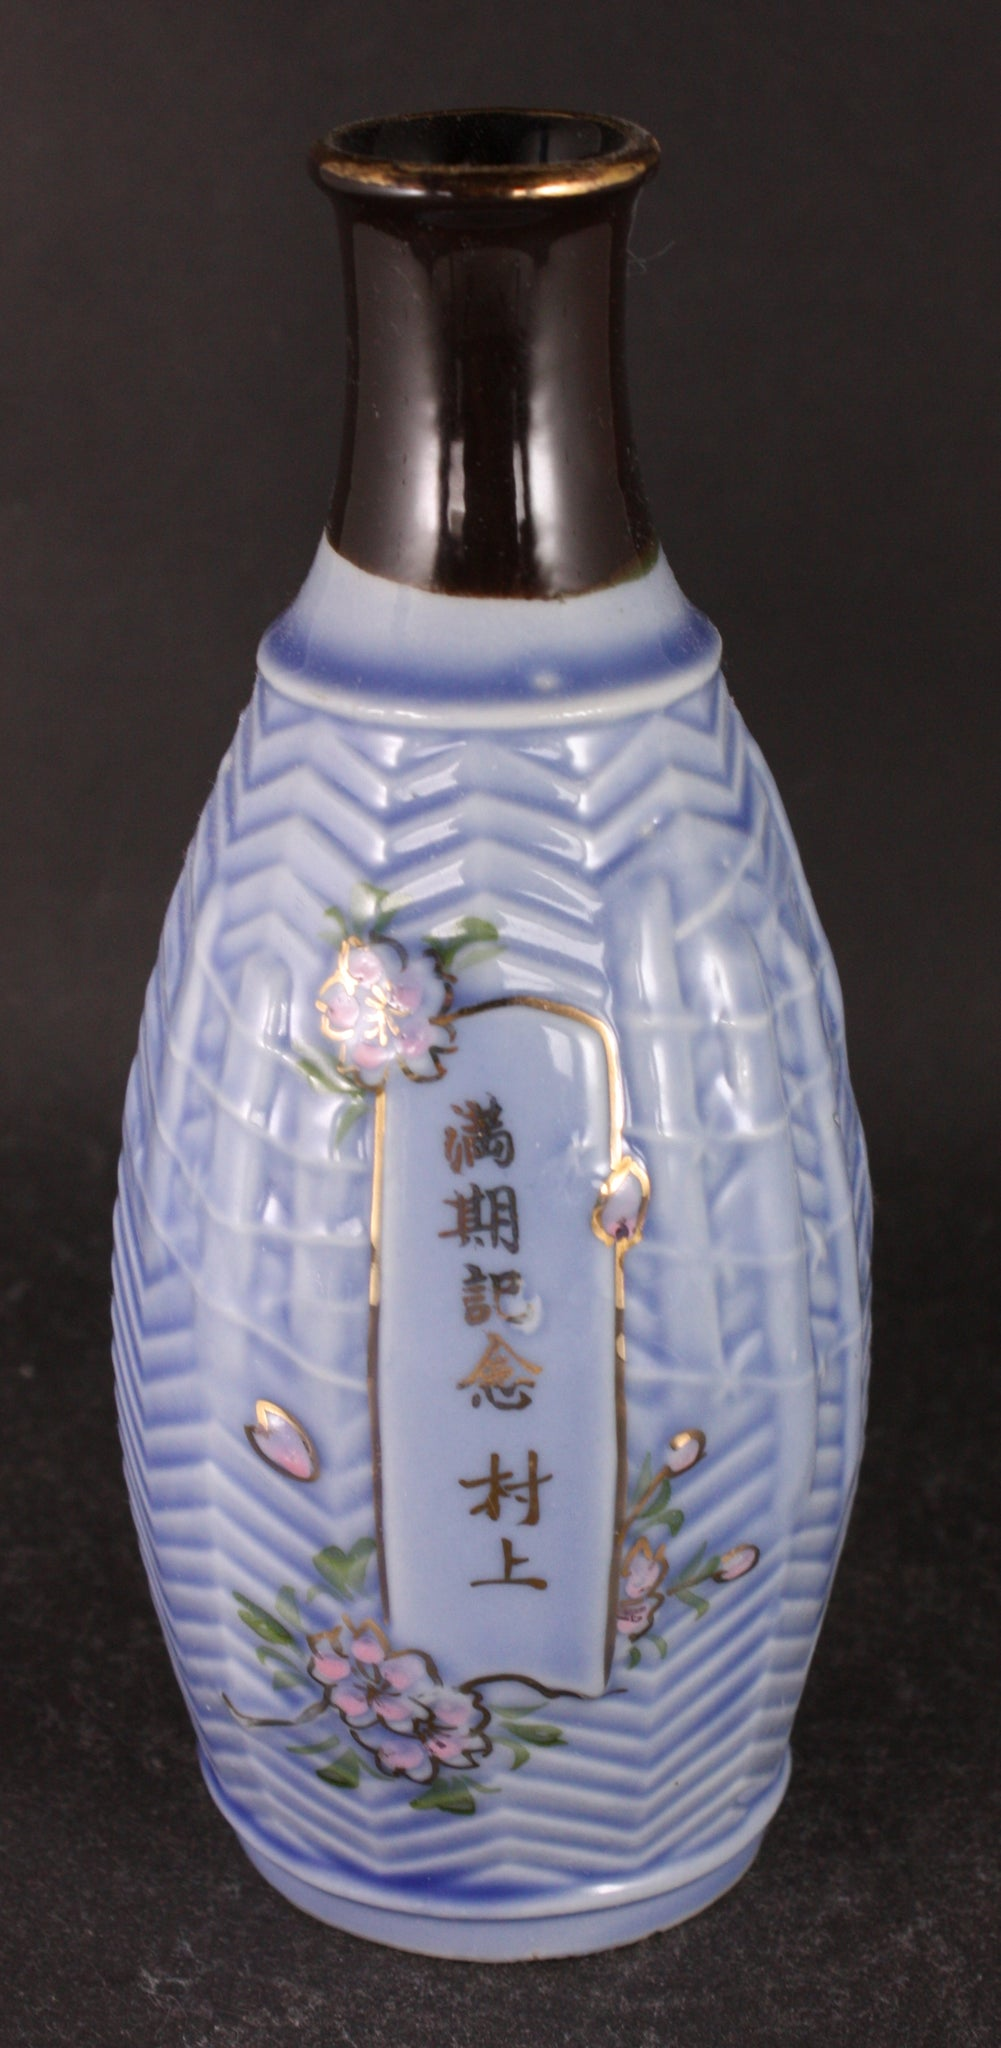 Antique Japanese Three Nikudan Soldiers Shanghai Incident Army Sake Bottle